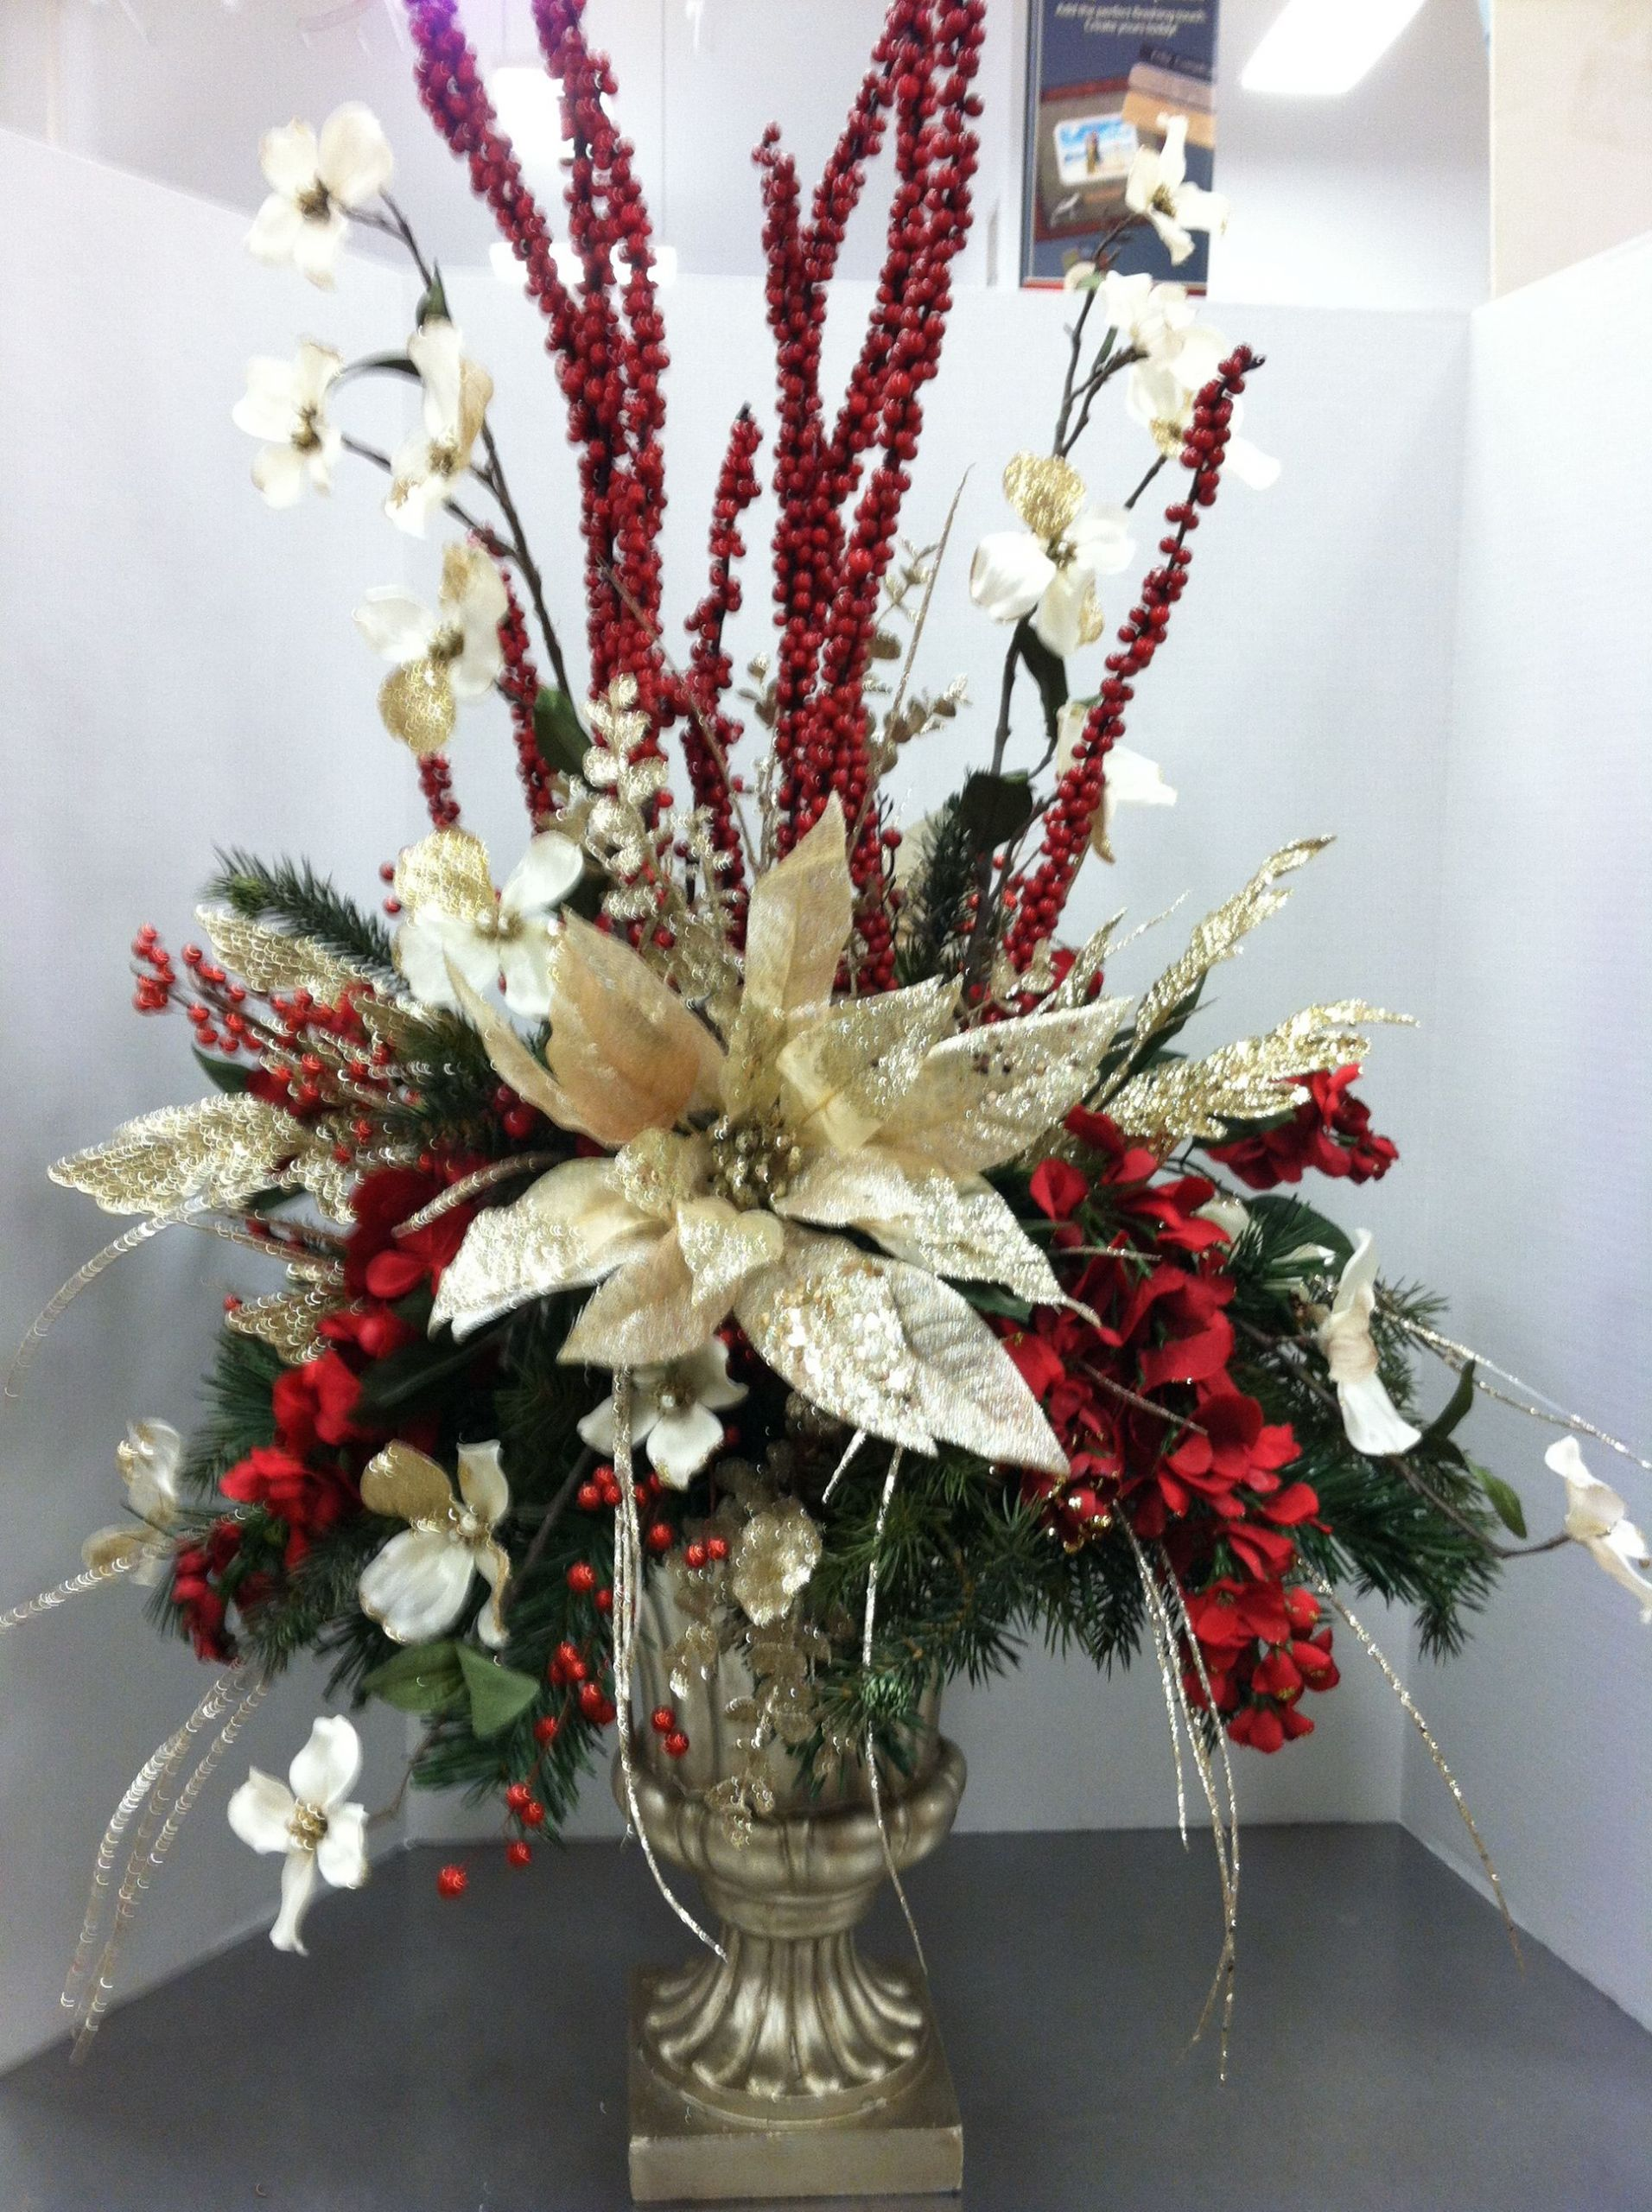 Homemade Christmas Flower Arrangements  Trina this would be beautiful for Christmas arrangement